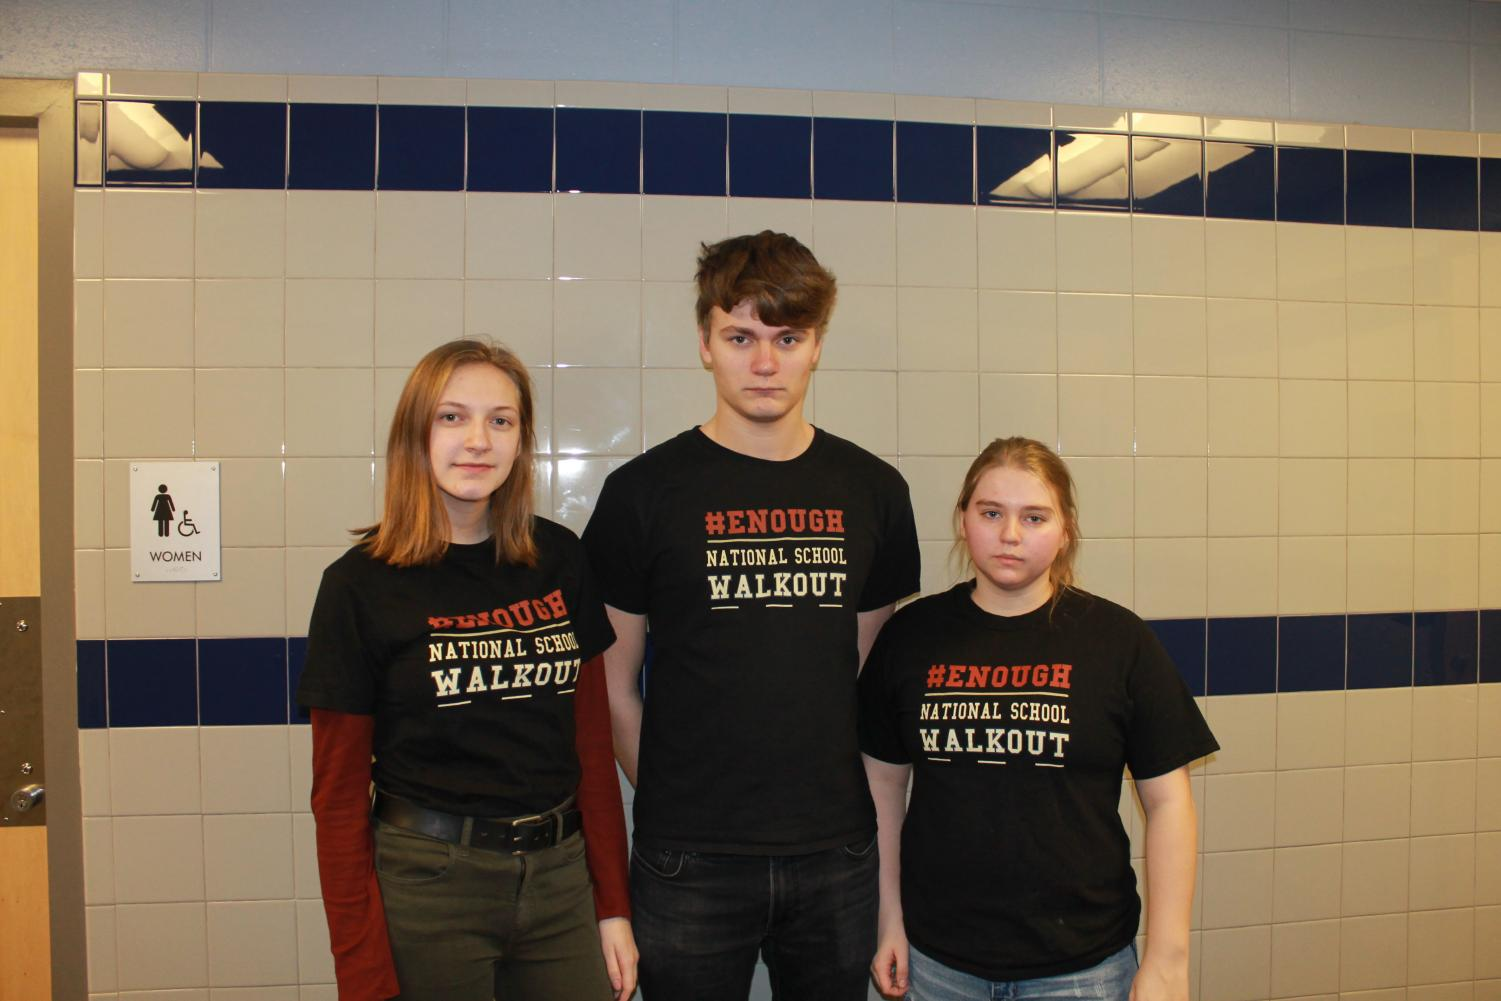 Sophomore Juli Russ and seniors Alex Harrison and Sydney Cooper wear their #Enough shirts to remember the lives lost during the Parkland shooting.